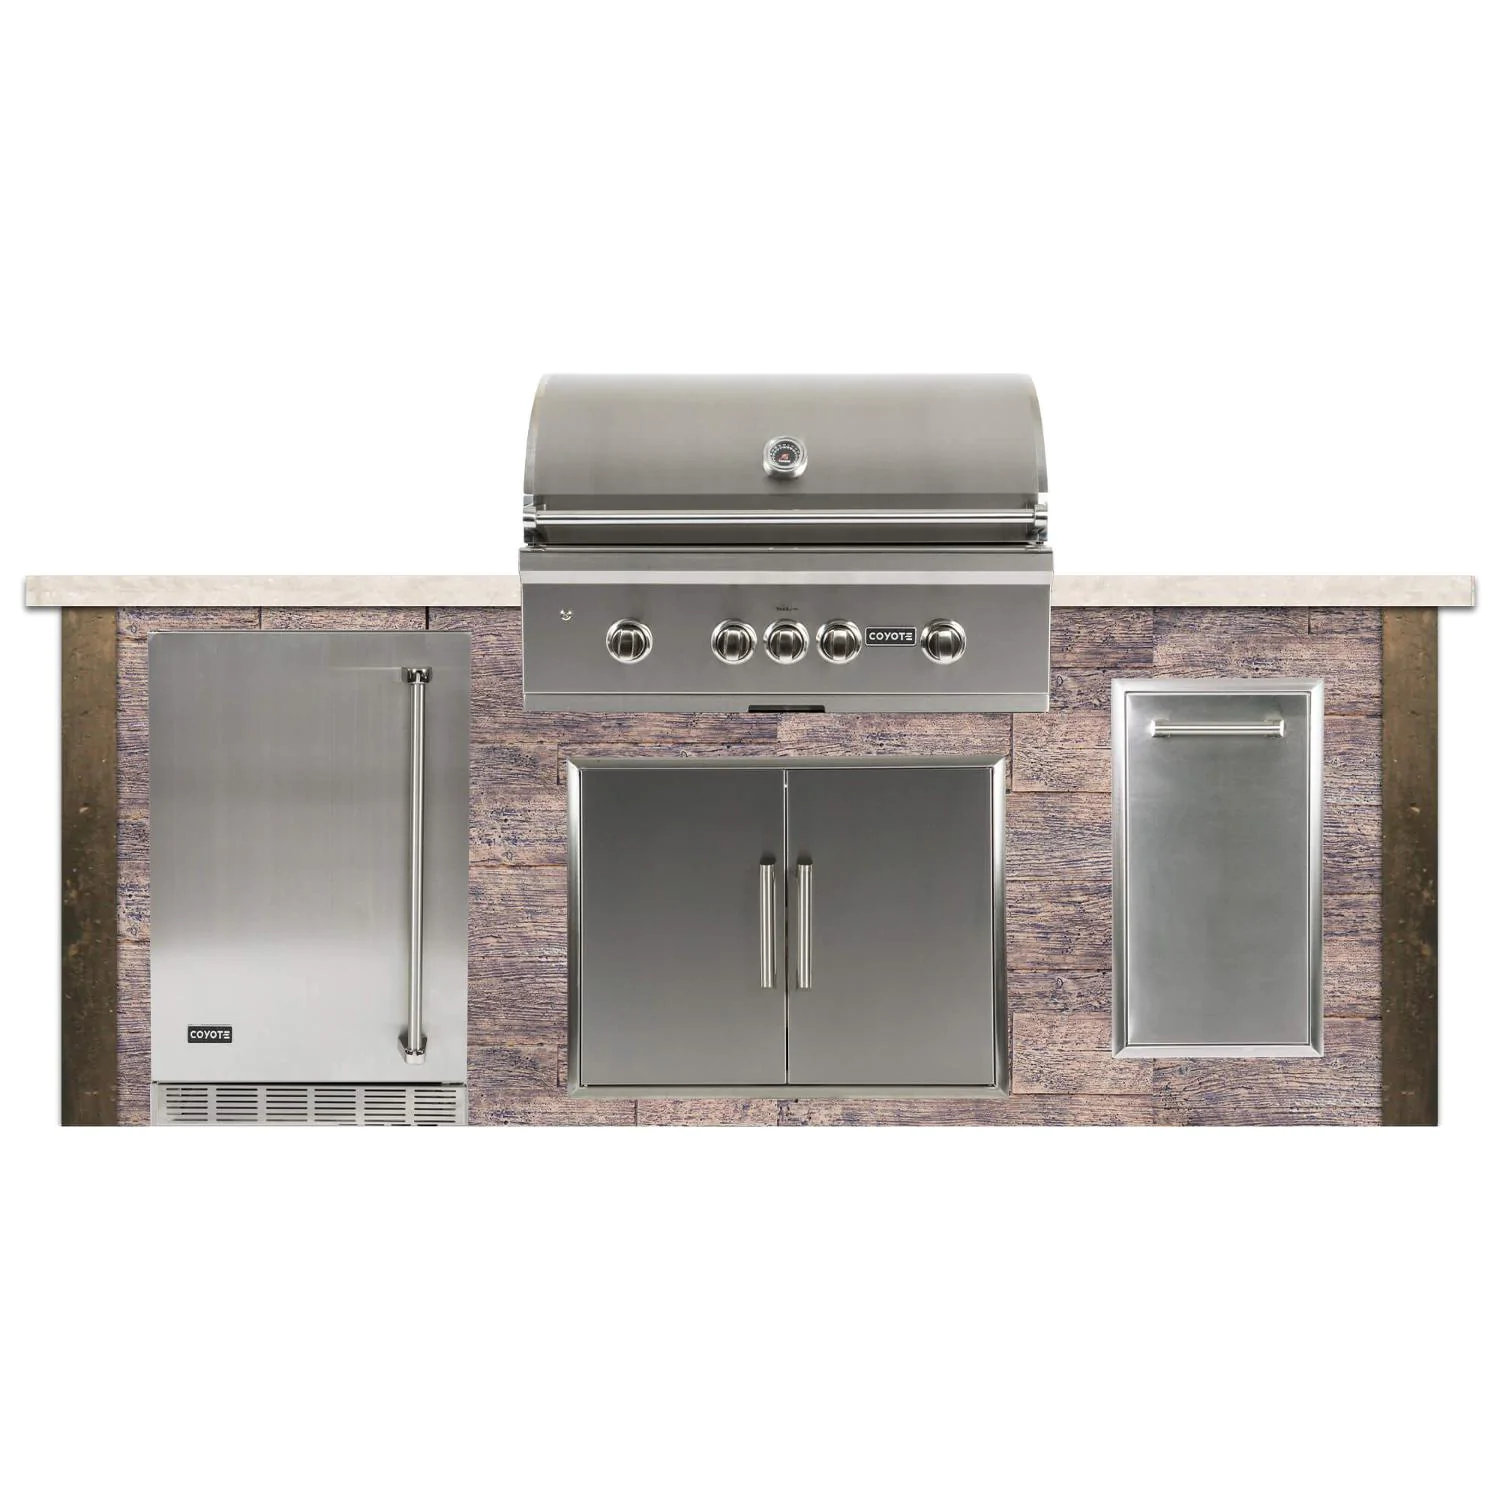 Coyote Ready-To-Assemble 8 Ft Outdoor Kitchen Island With 36-Inch S-Series Propane Gas Grill - Weathered Wood/Brown Terra - RTAC-G8-WB-C2SL36LP